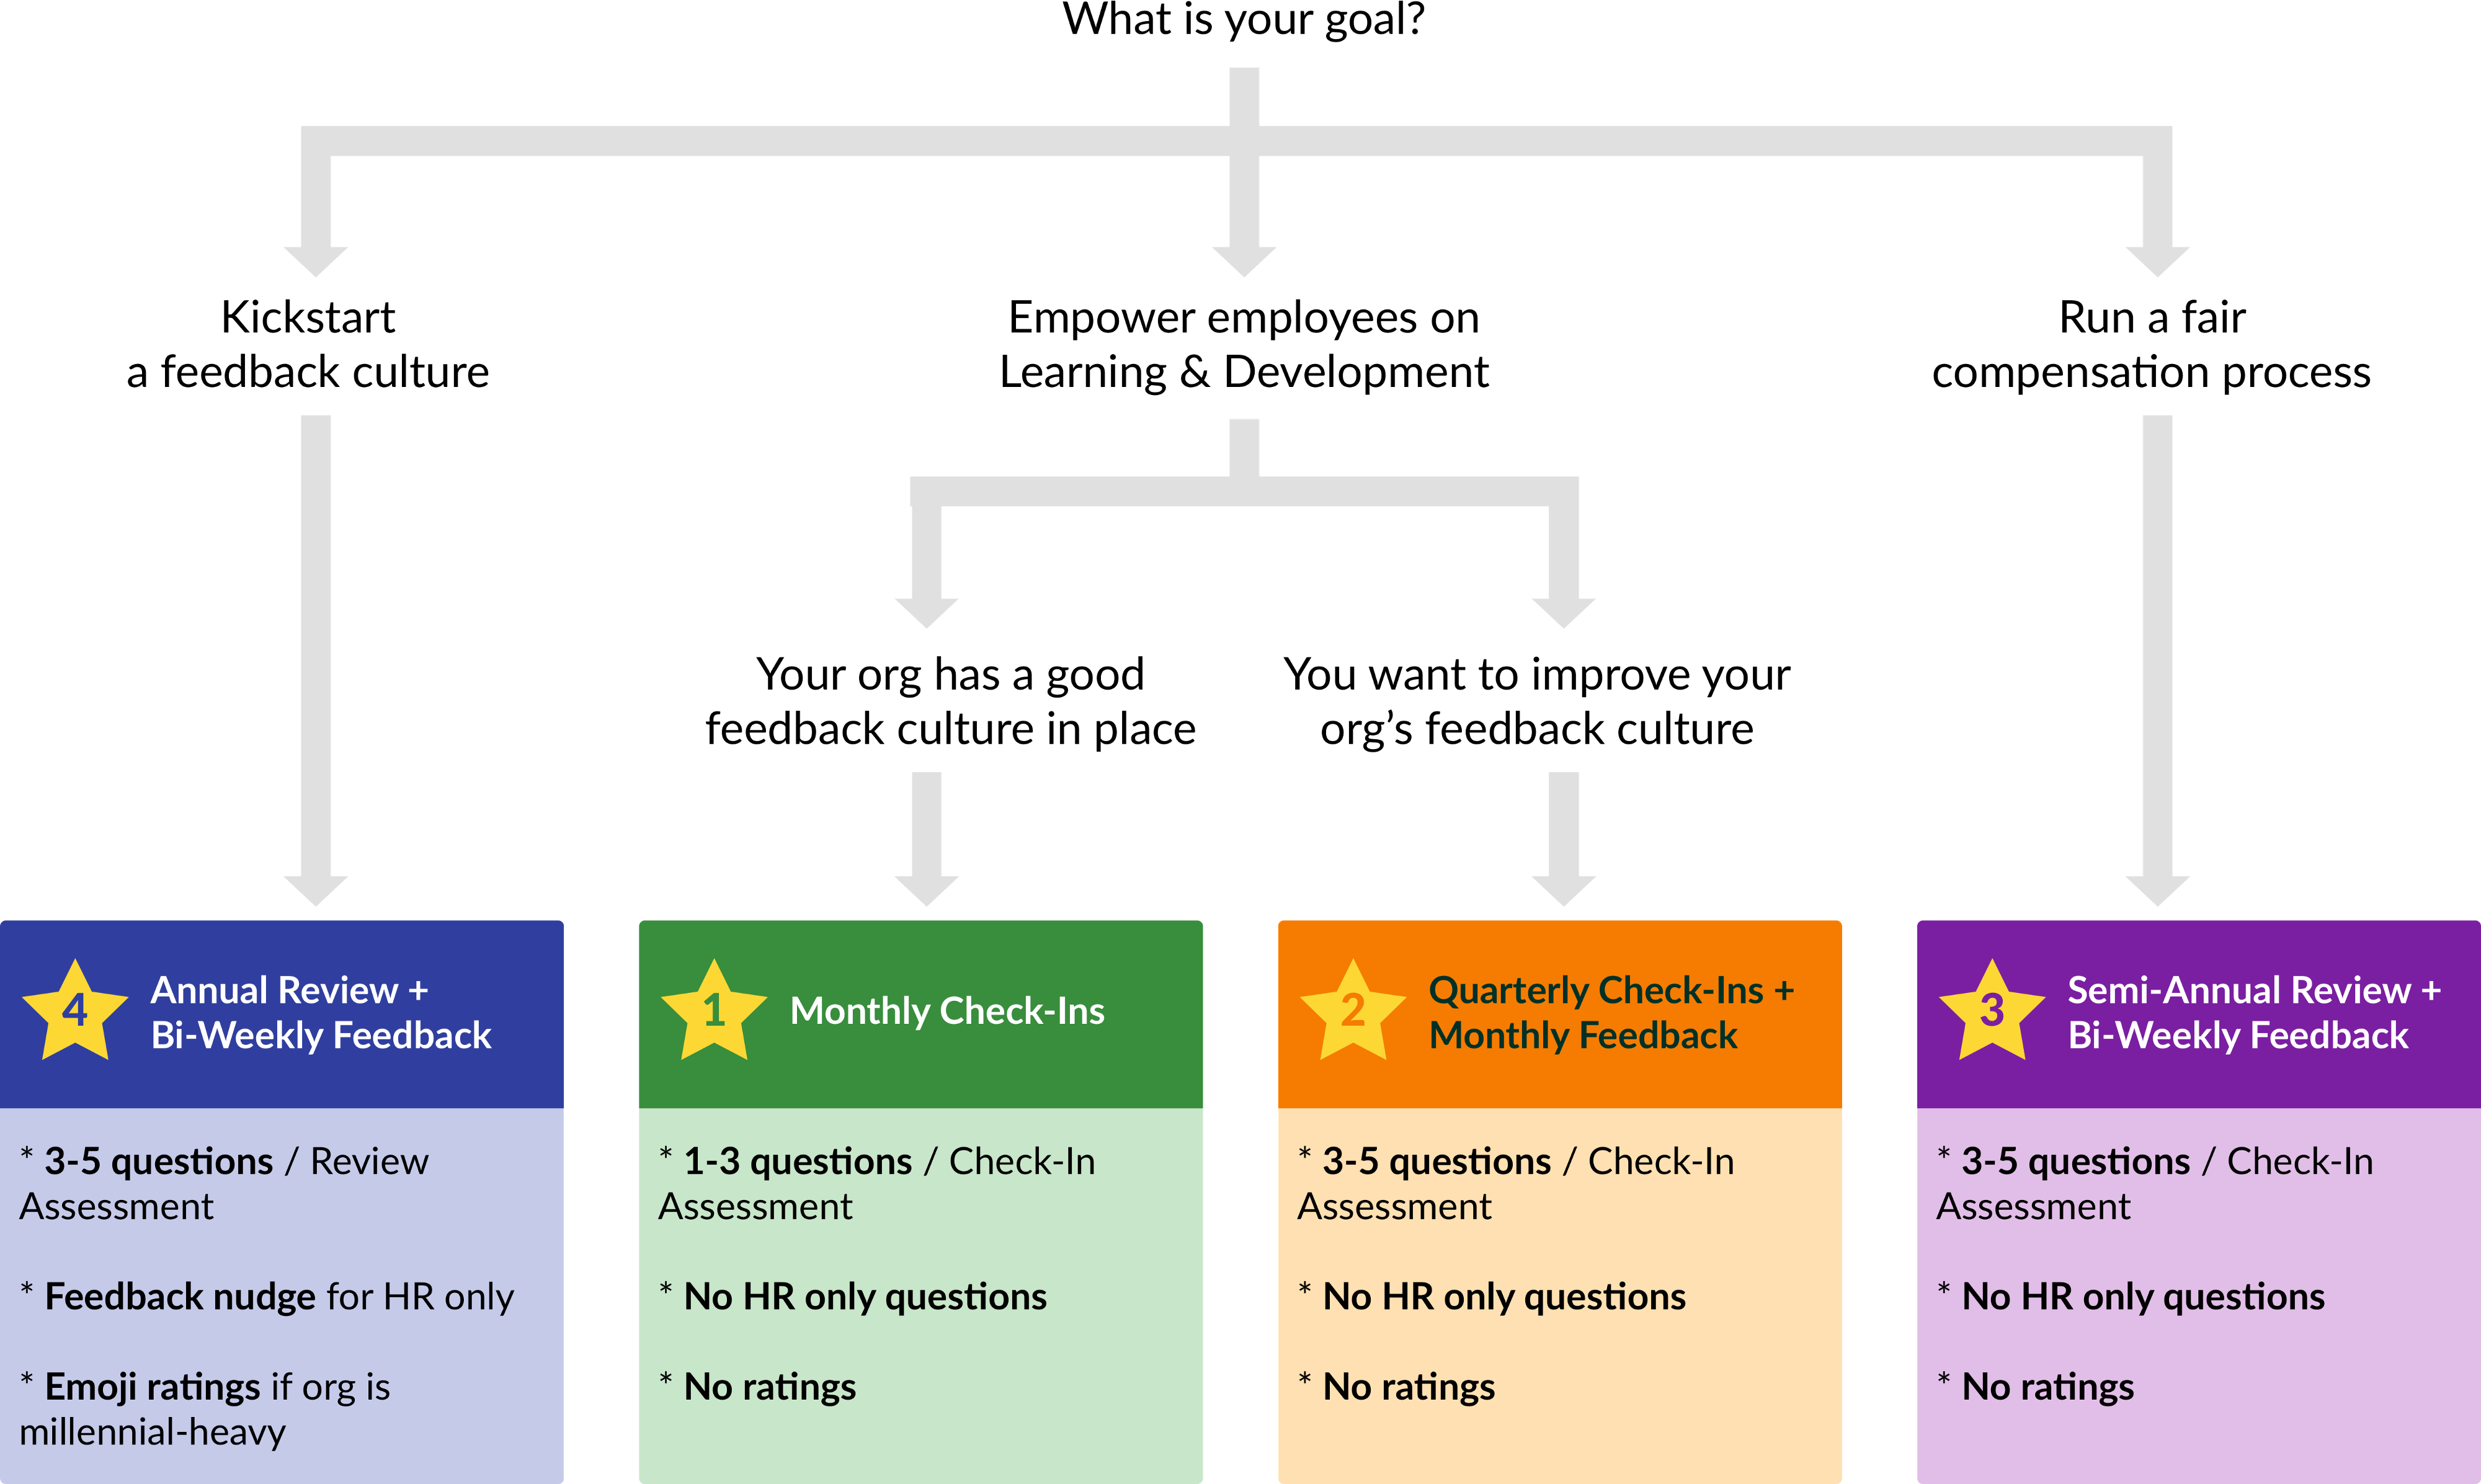 Review Design II: Determining Assessment Types and Questions